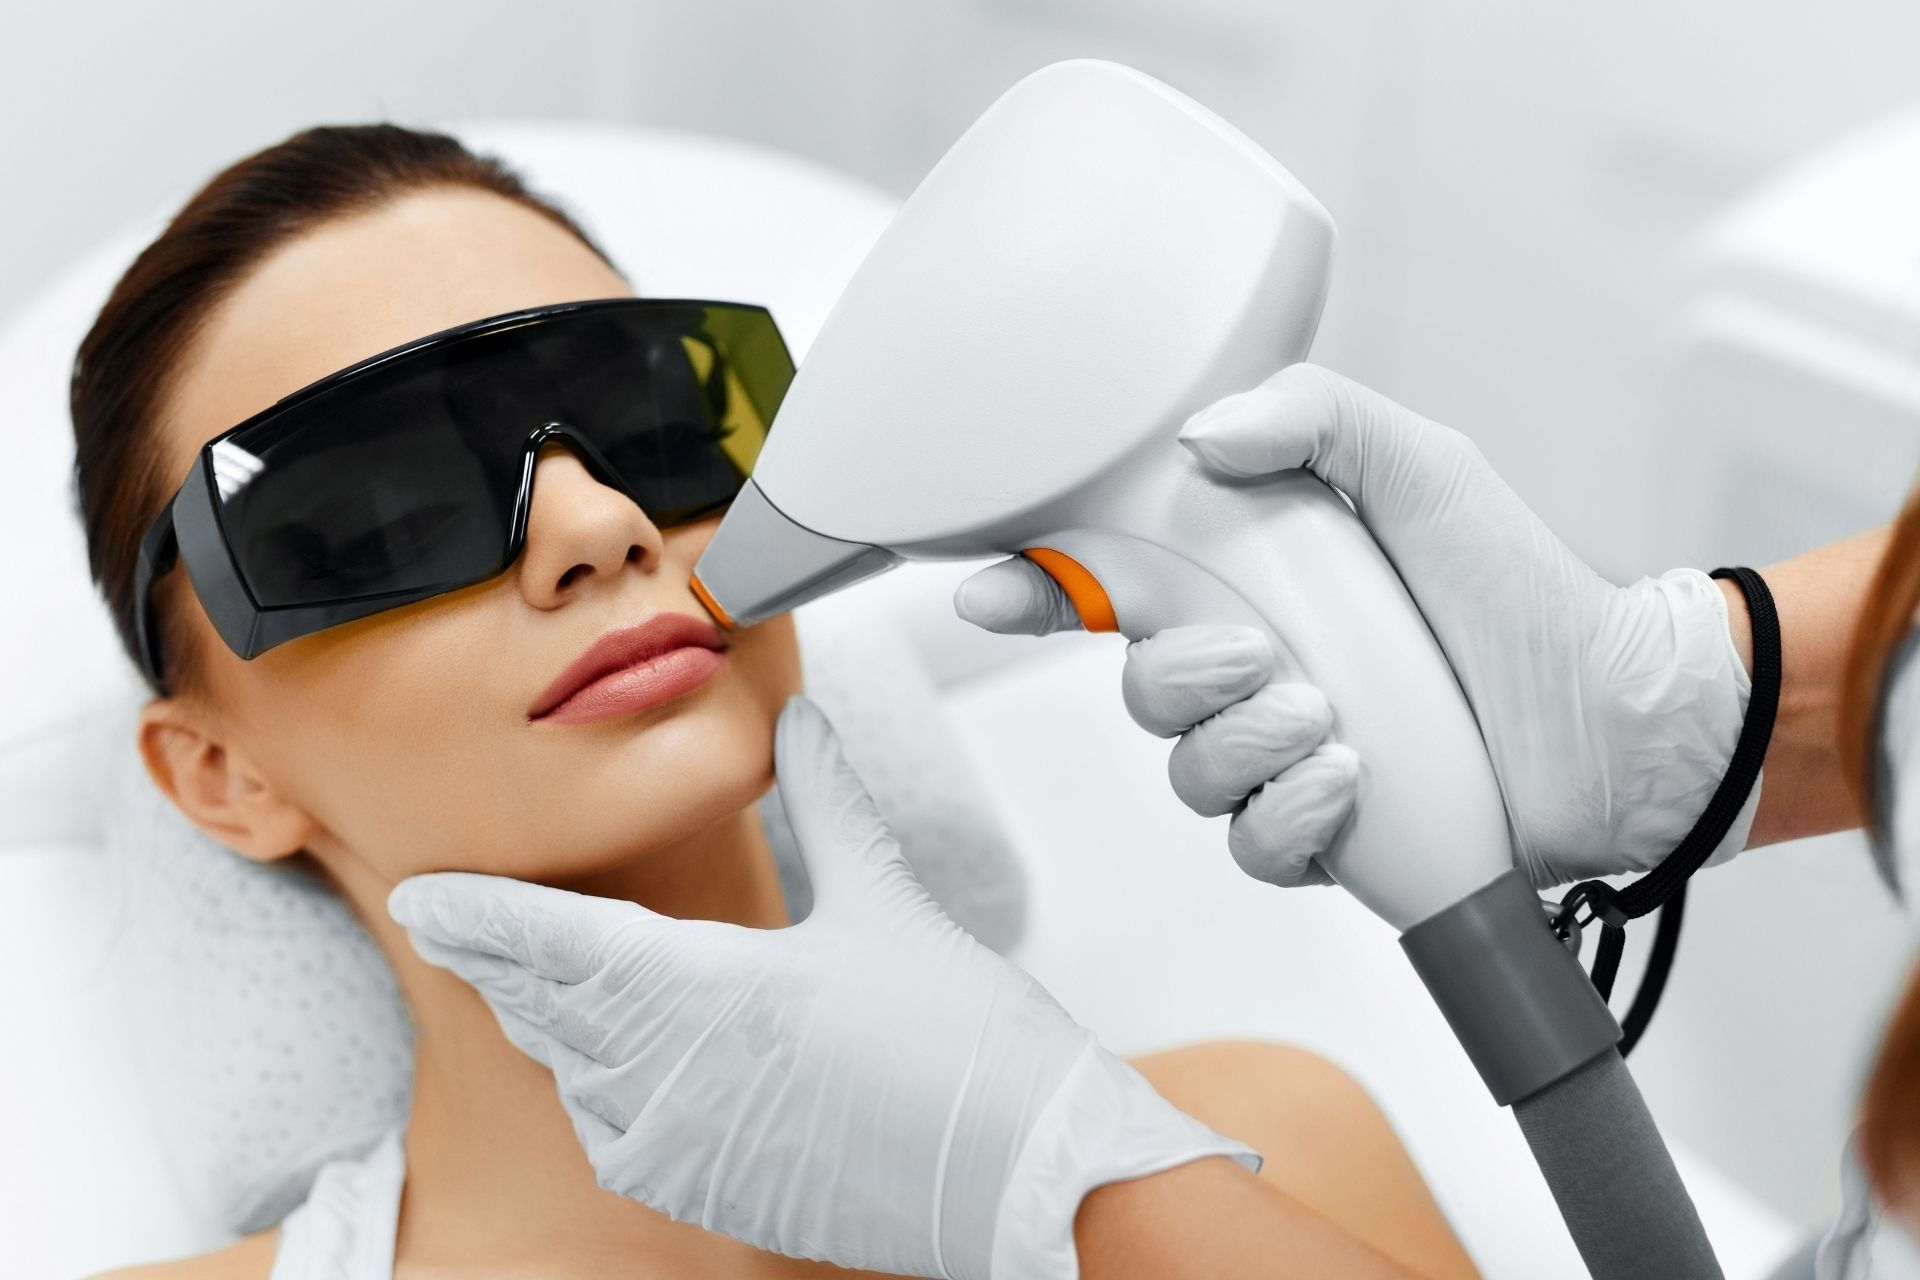 a person undergoing a laser hair removal procedure